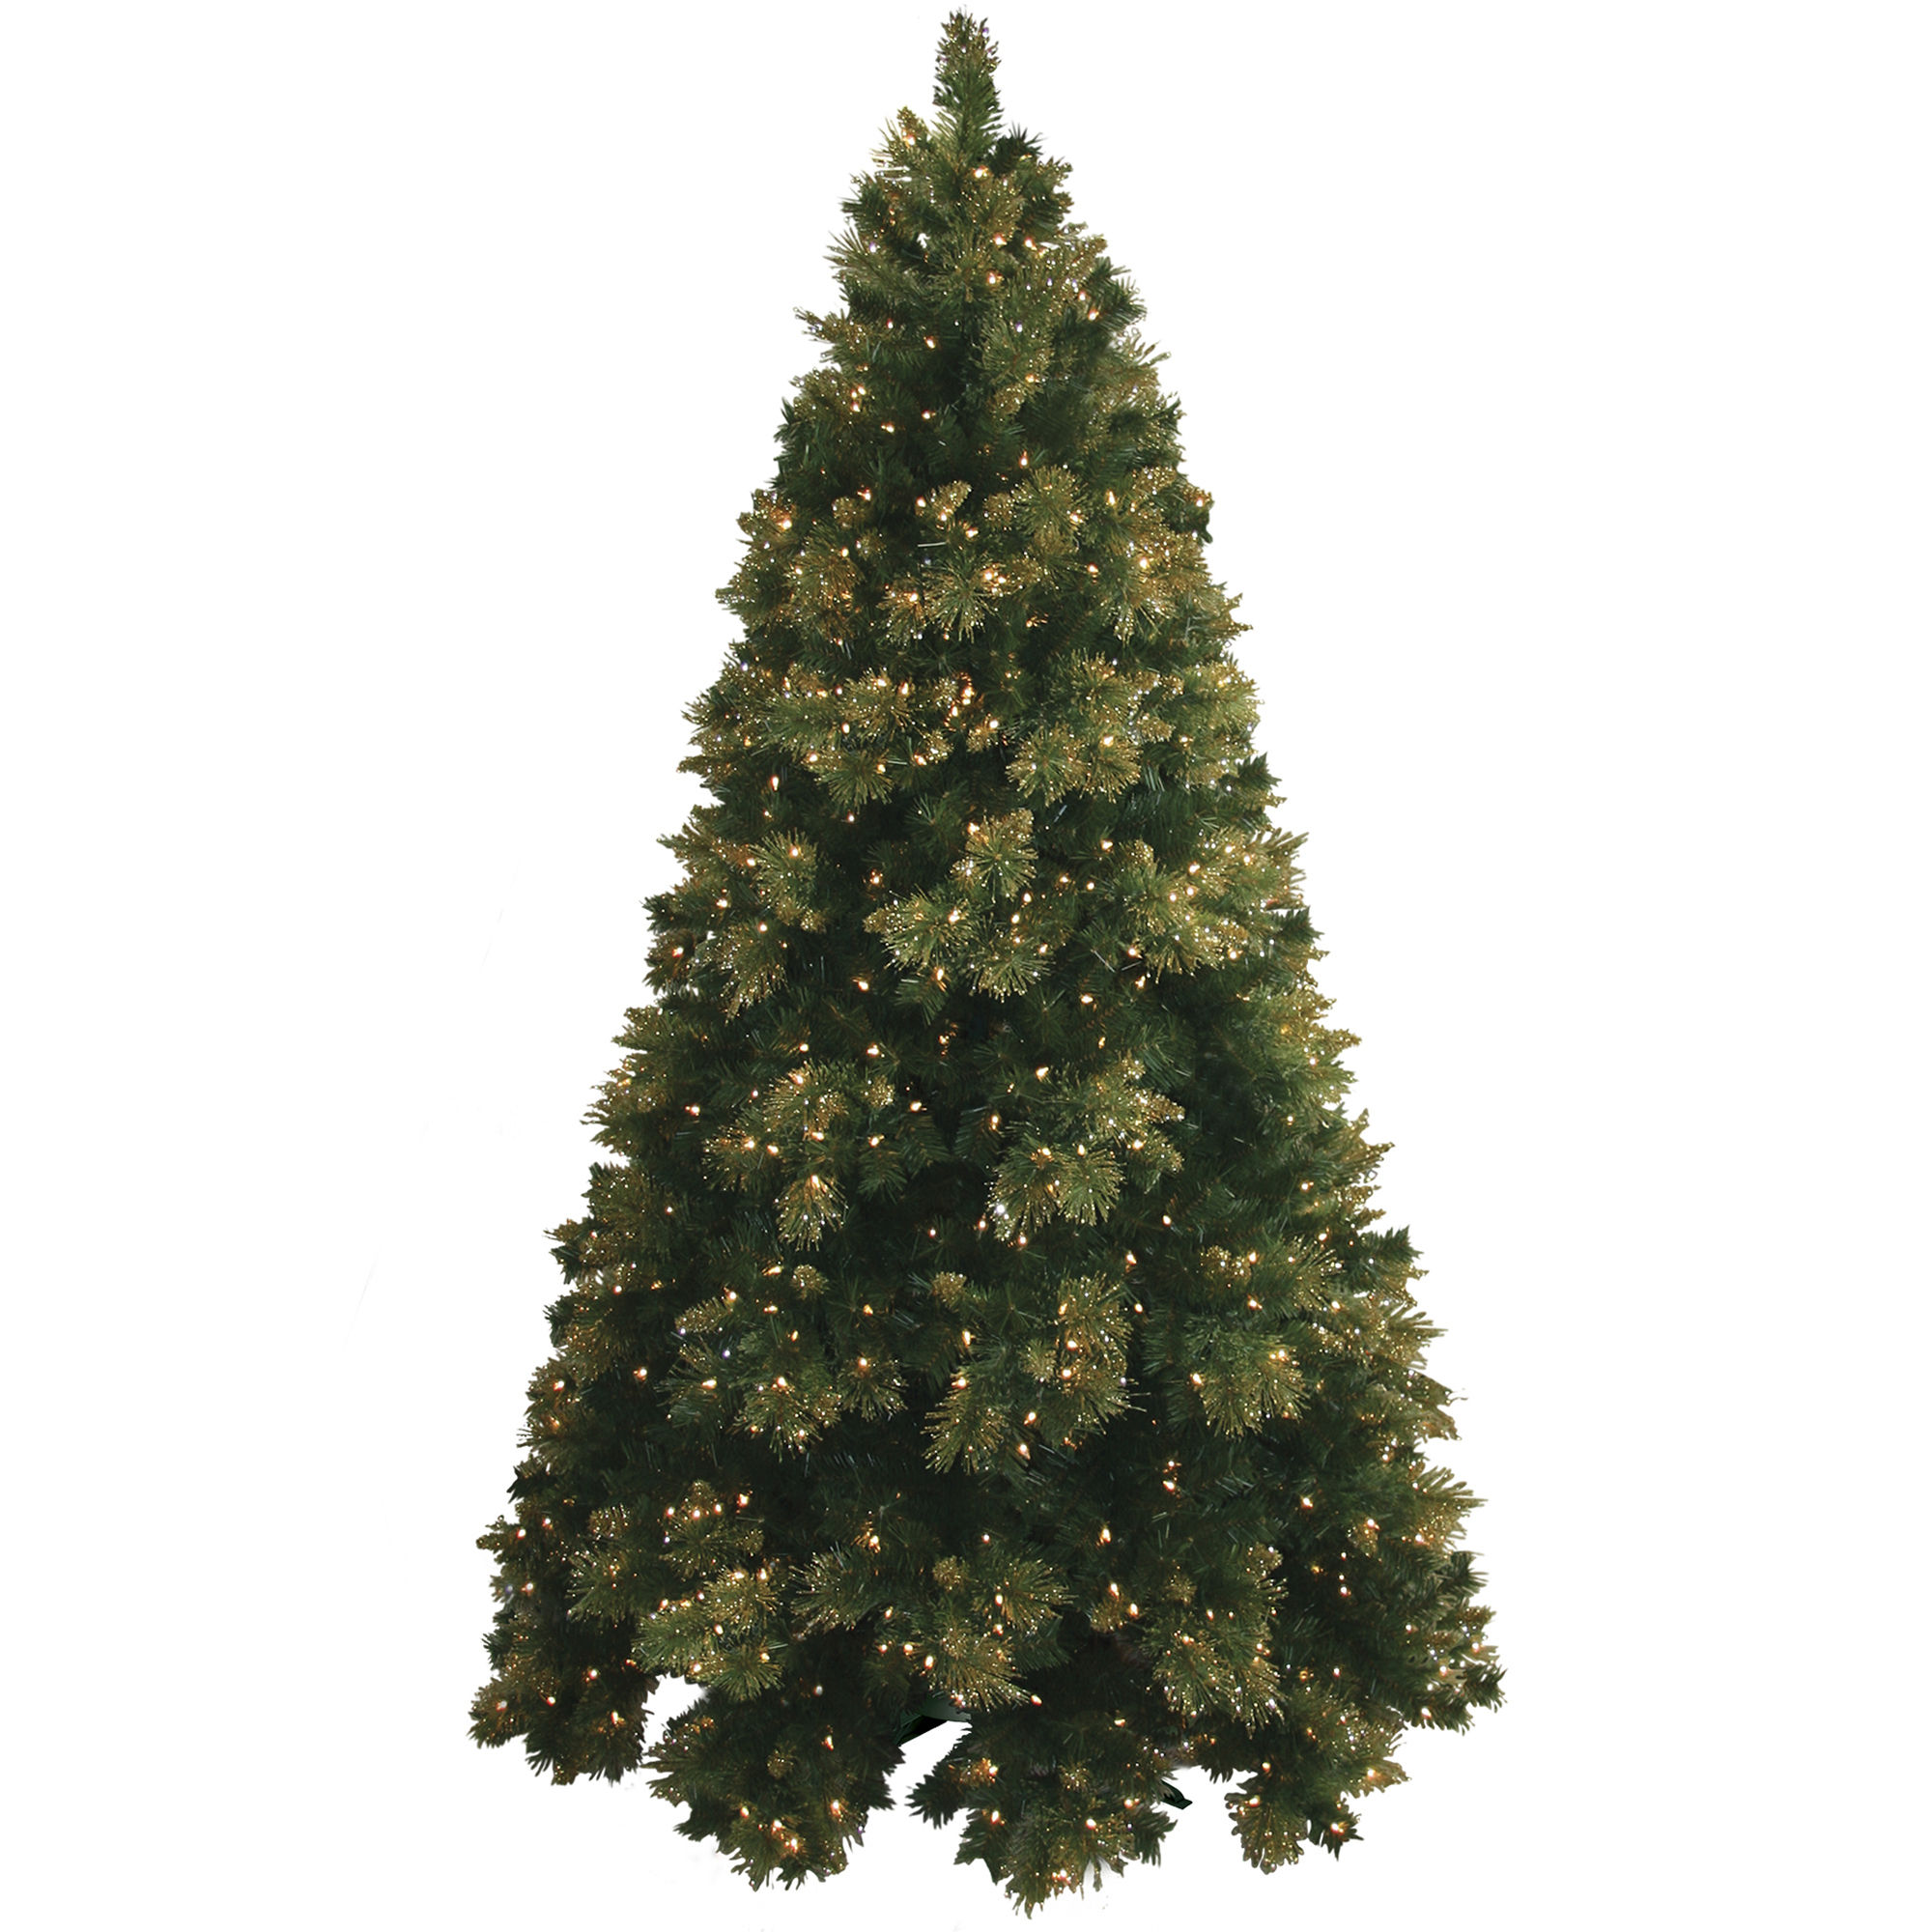 When Should I Buy A Christmas Tree